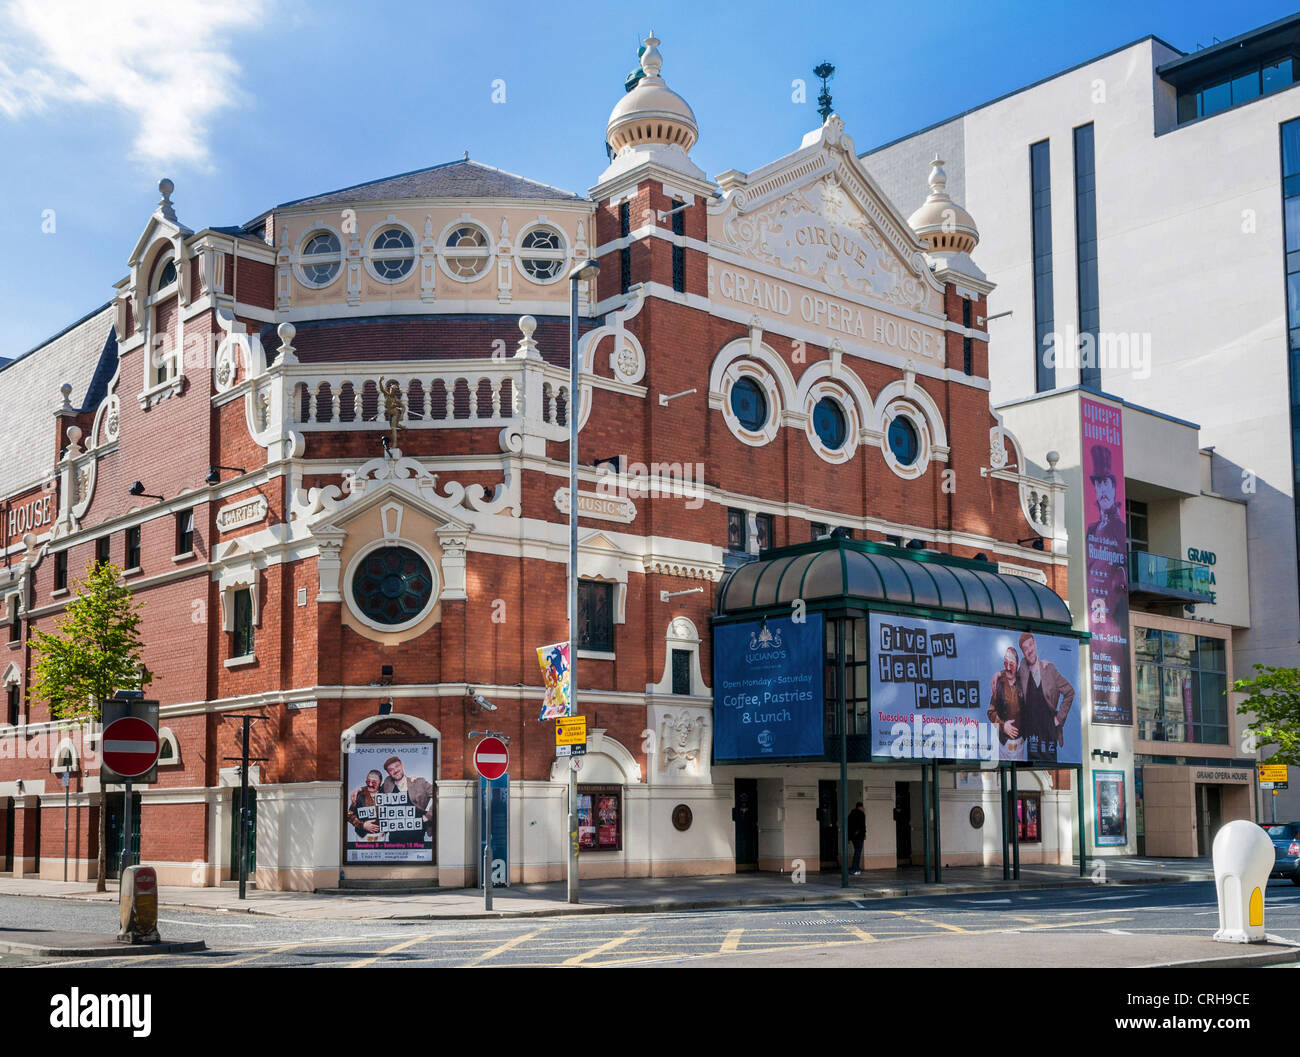 The Grand Opera House, Belfast, Northern Ireland - front view of this old historic building in the city centre - Stock Image